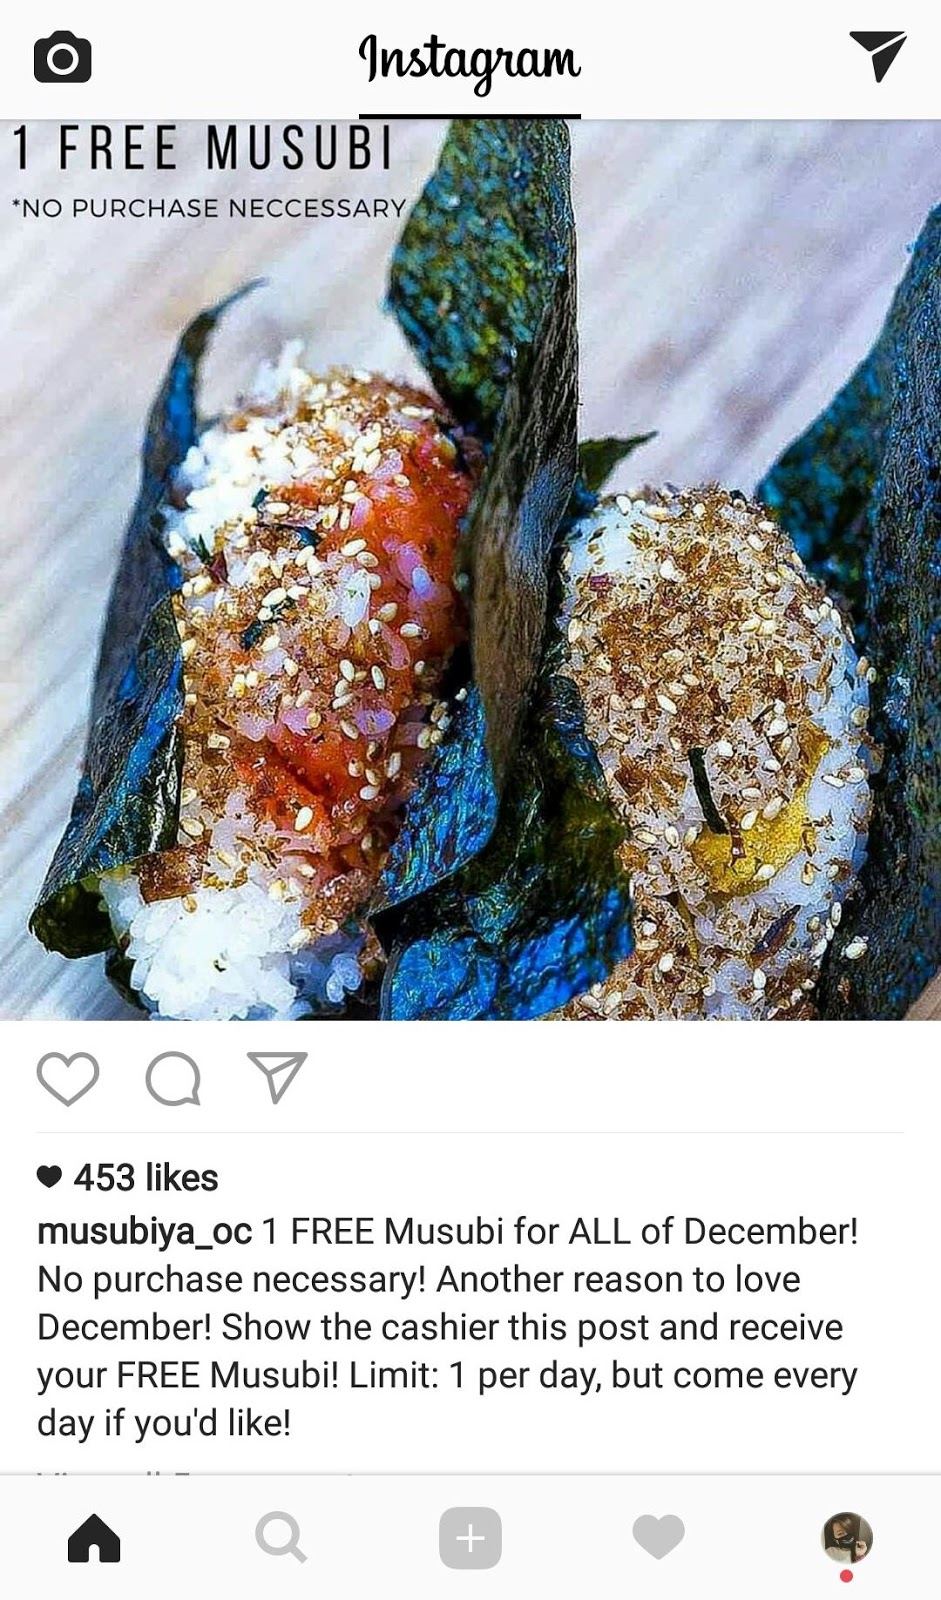 Redeem Your Free Onigiri Everyday All December from Musubiya Balls and Burgers in Santa Ana